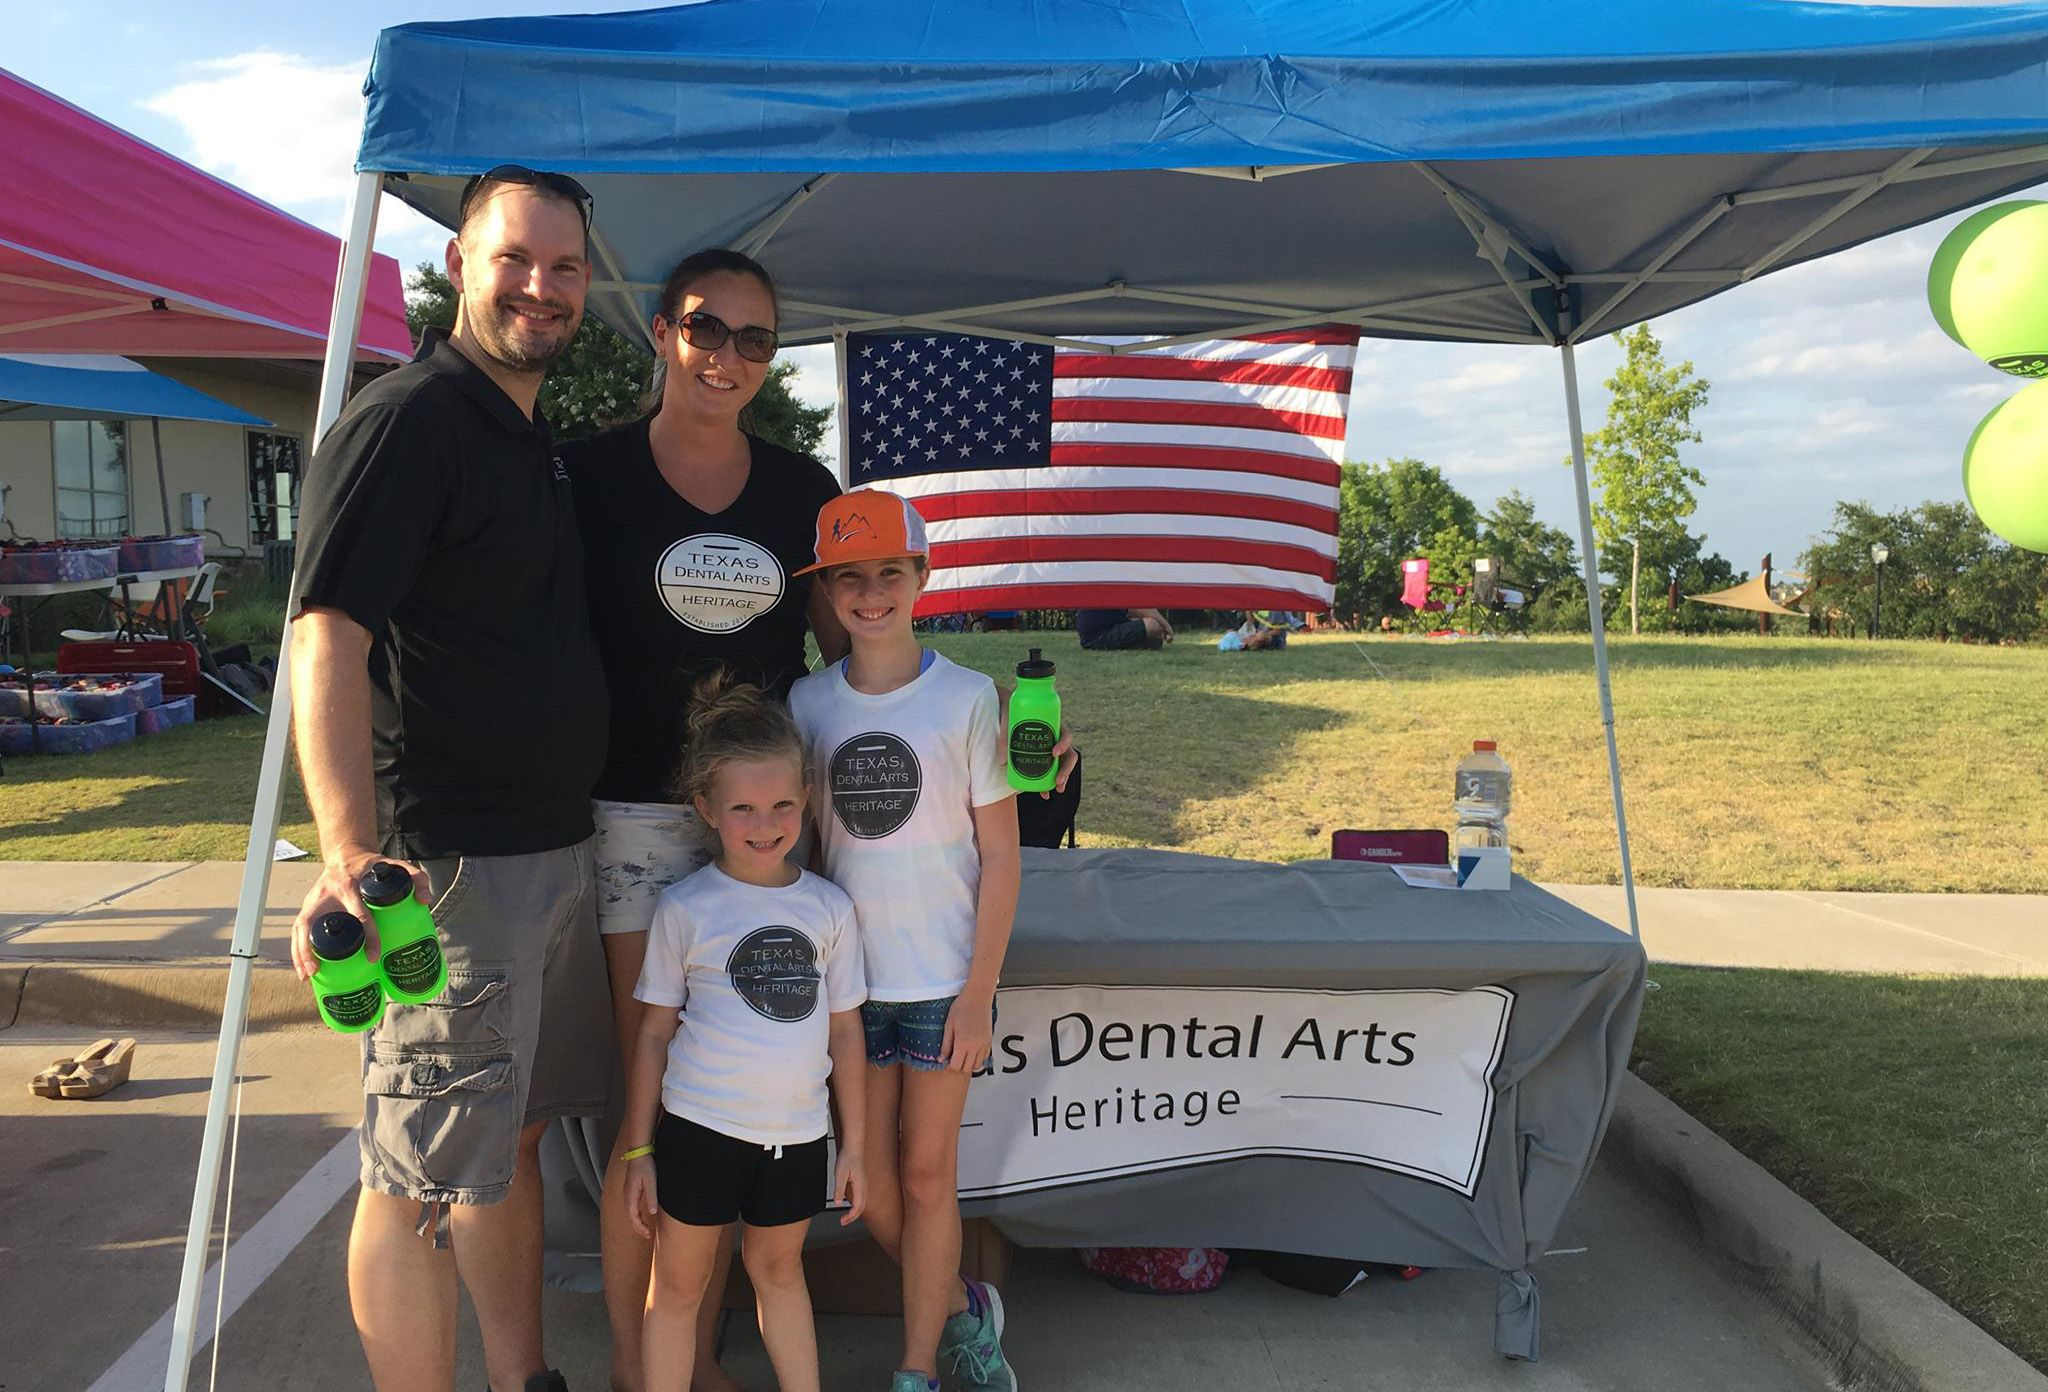 Texas Dental Arts at Heritage Event